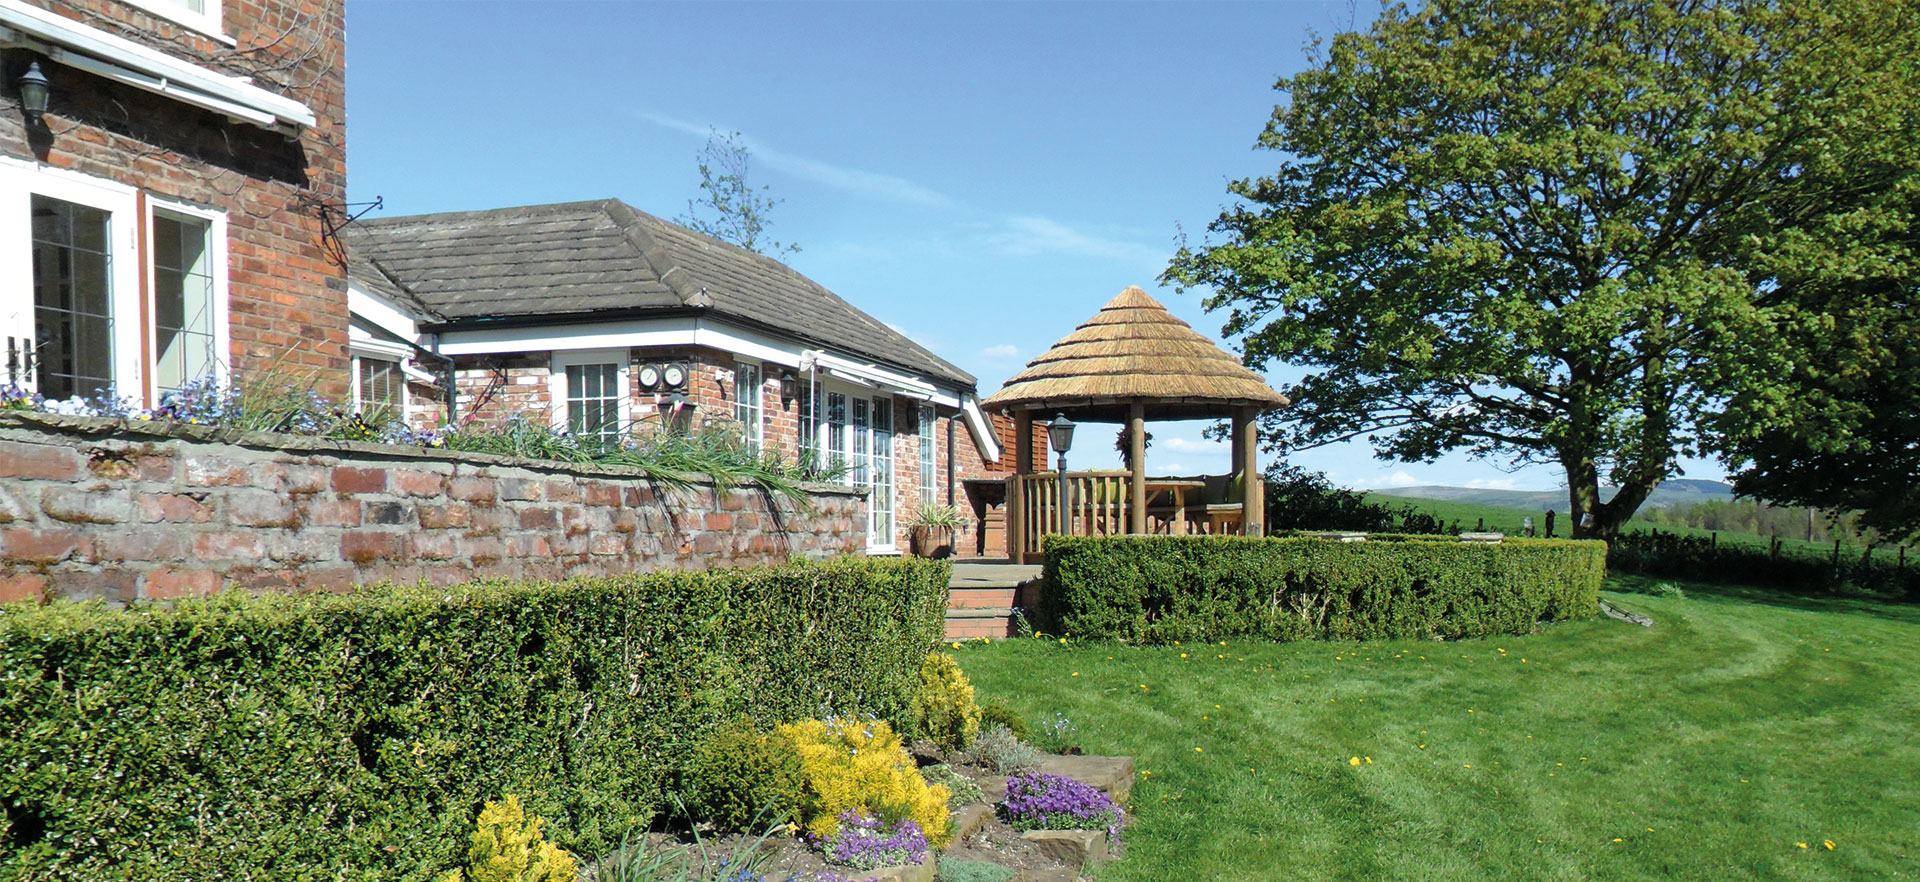 Image looking up at 3 metre gazebo on patio in front of large house